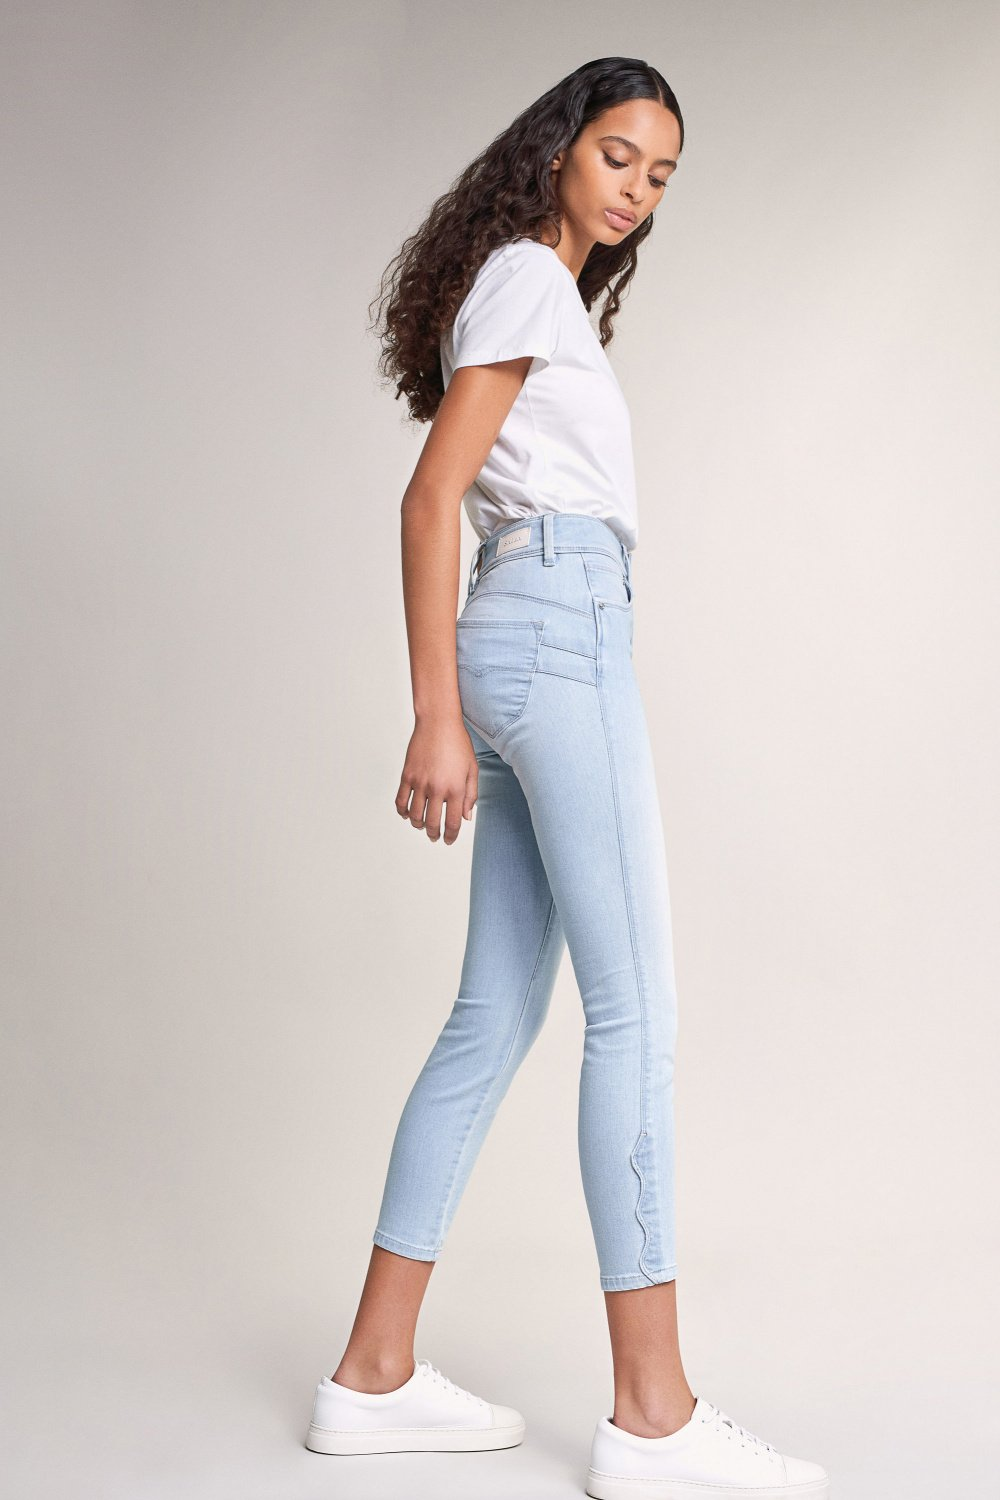 Push In Secret capri jeans with wave detail - Salsa